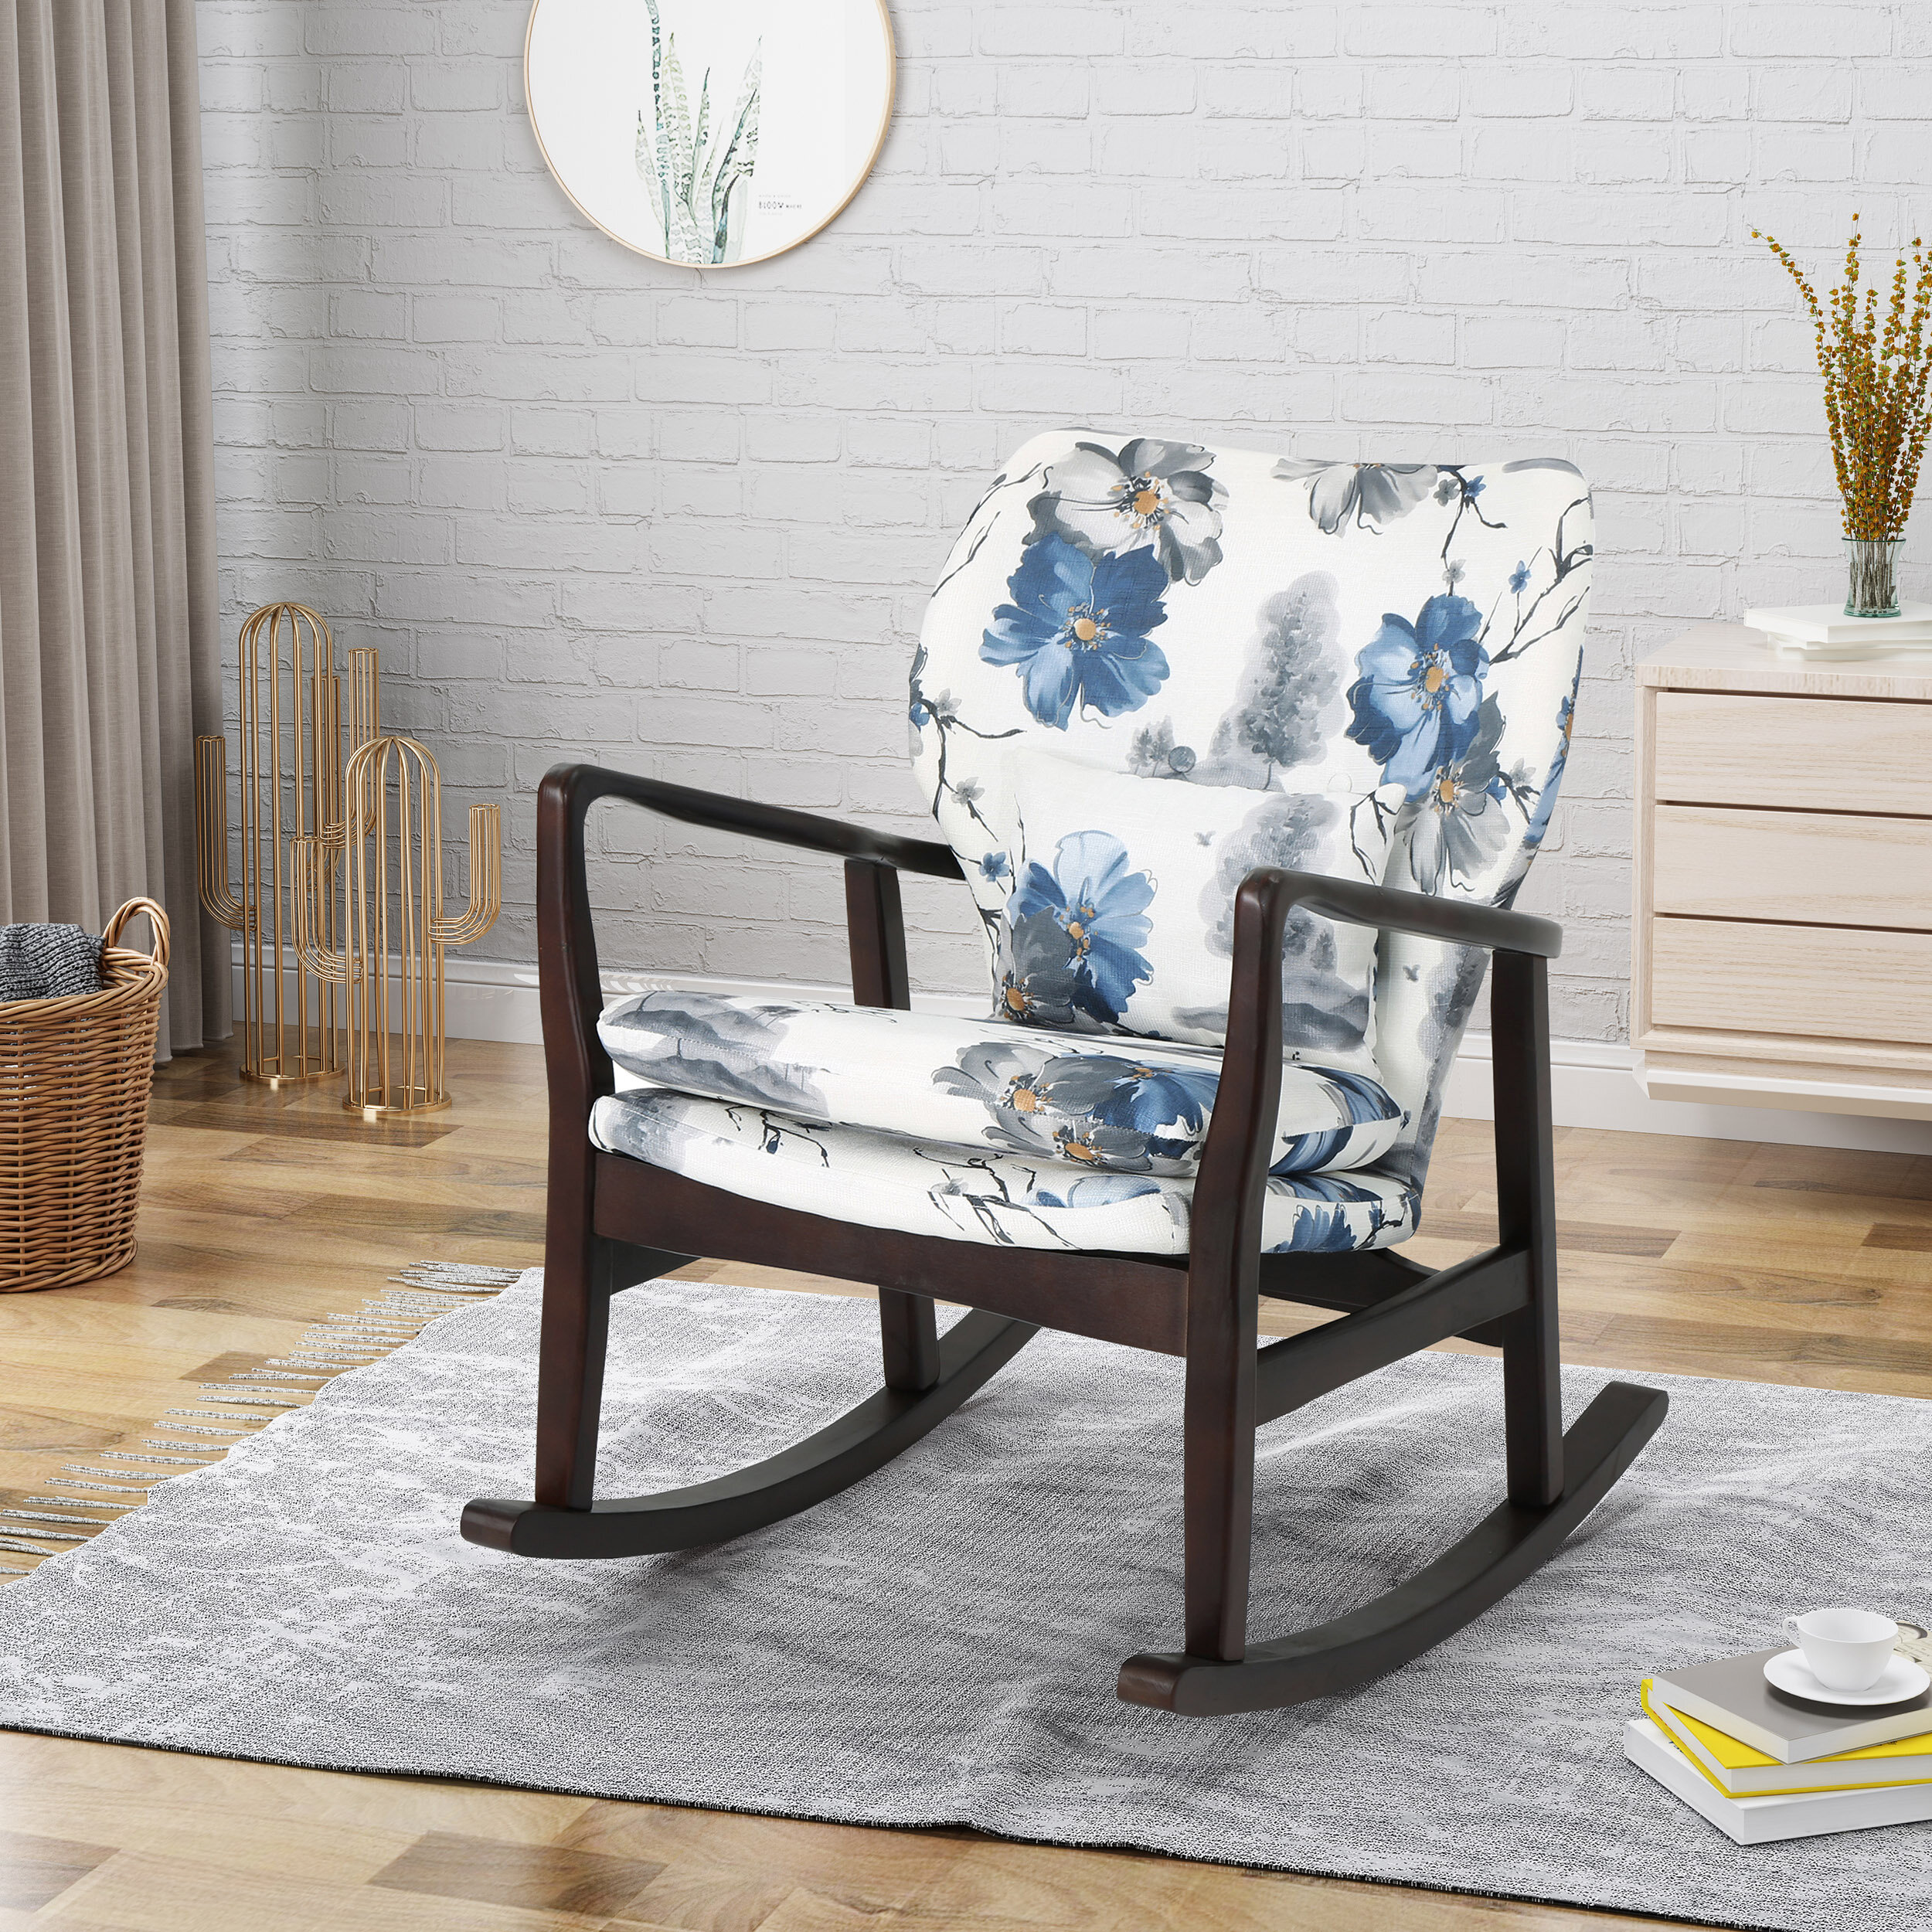 Charmant Winchell Rocking Chair